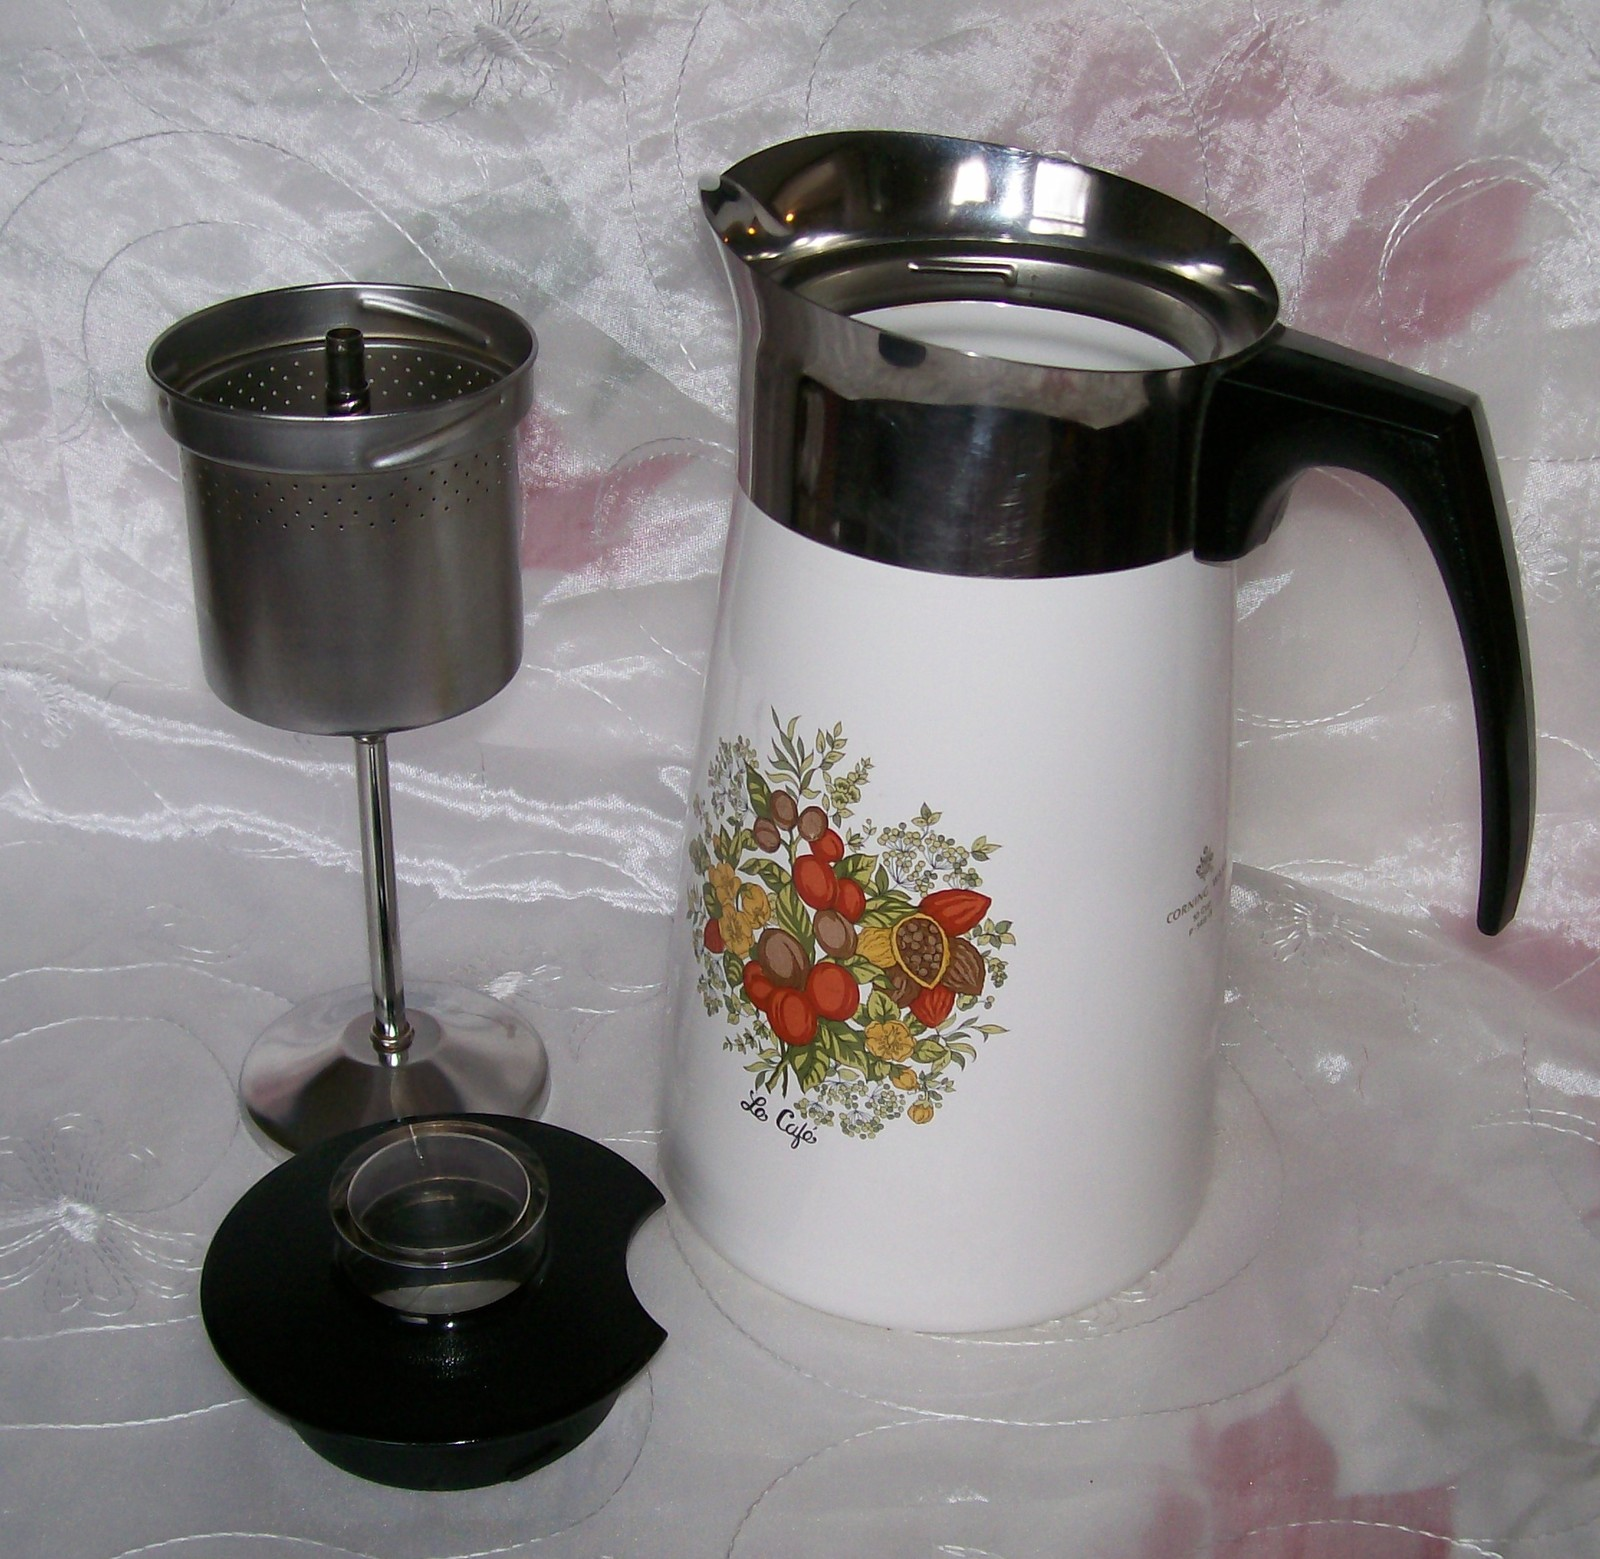 Vintage Corning SPICE OF LIFE Stove Top 10 Cup Coffee Pot / Percolator P149- EUC - Corning Ware ...